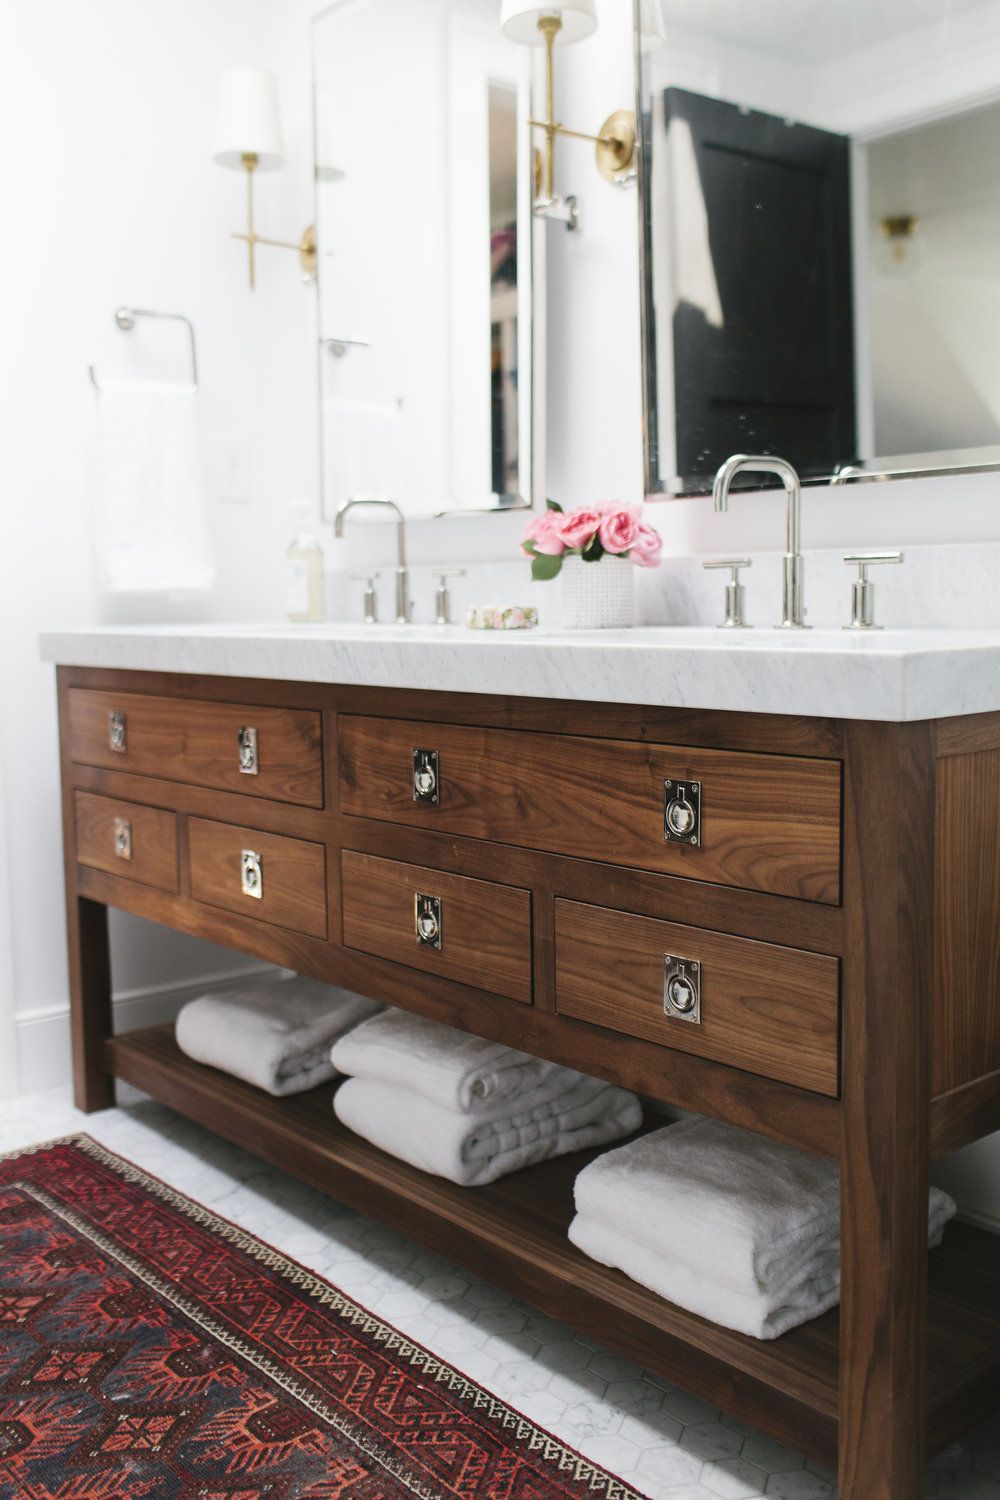 Lynwood Remodel Wood Bathroom Vanity Bathroom Vanity Drawers Wood Bathroom